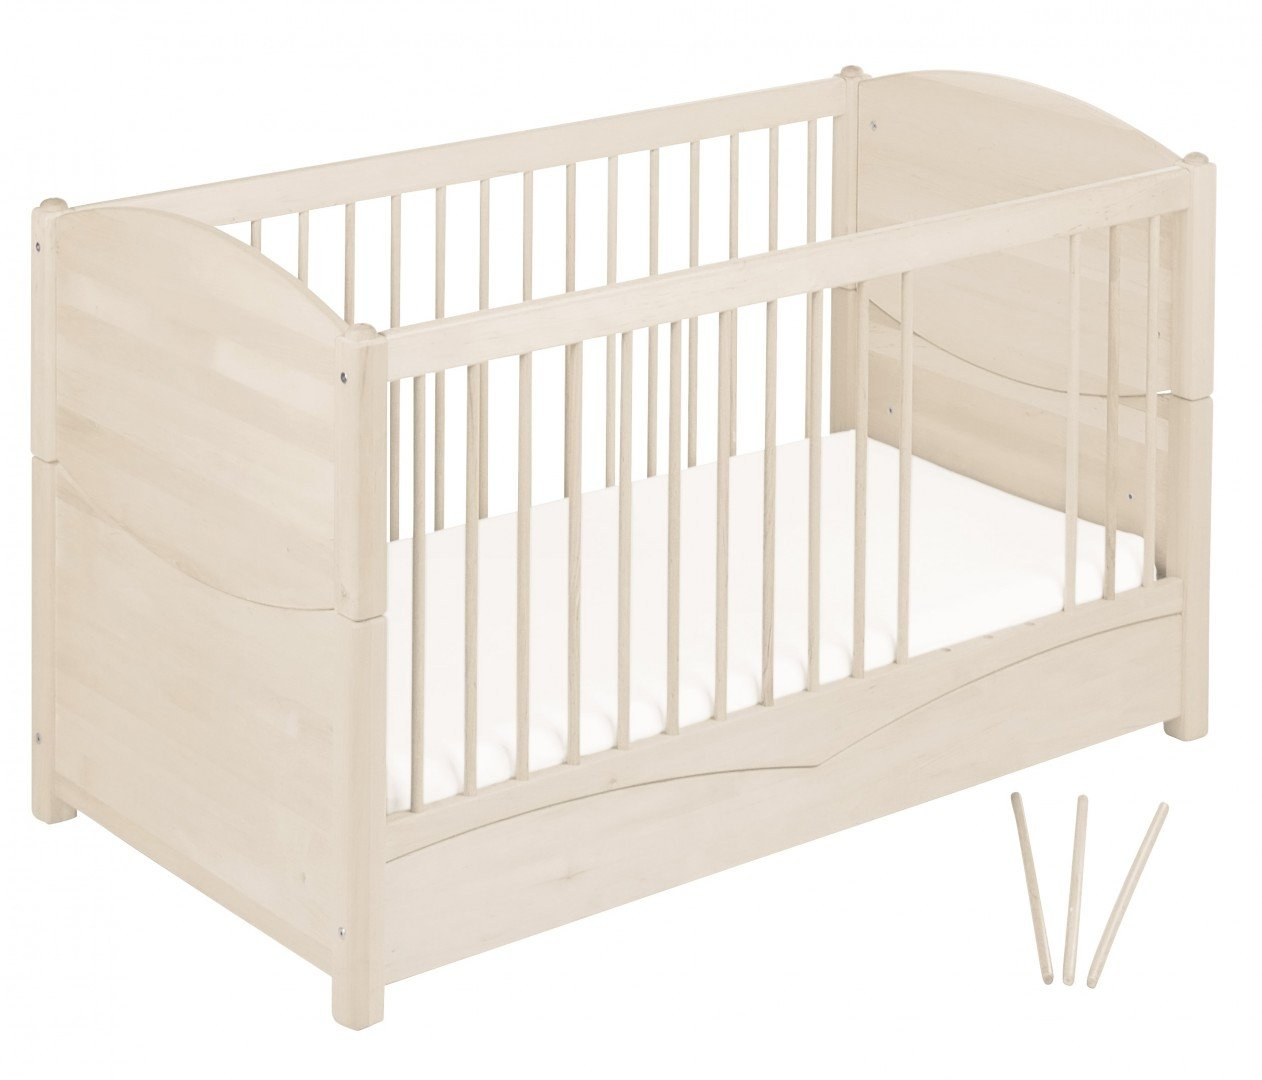 BioKinder 22128 Bed for babies and toddlers Luca from biological wood Bio-Kinder Bed Luca for Babies and Toddlers Adjustable height. 3 removable bars. Various features Sustainable solid biological wood (alder/pine). Biological finish 4